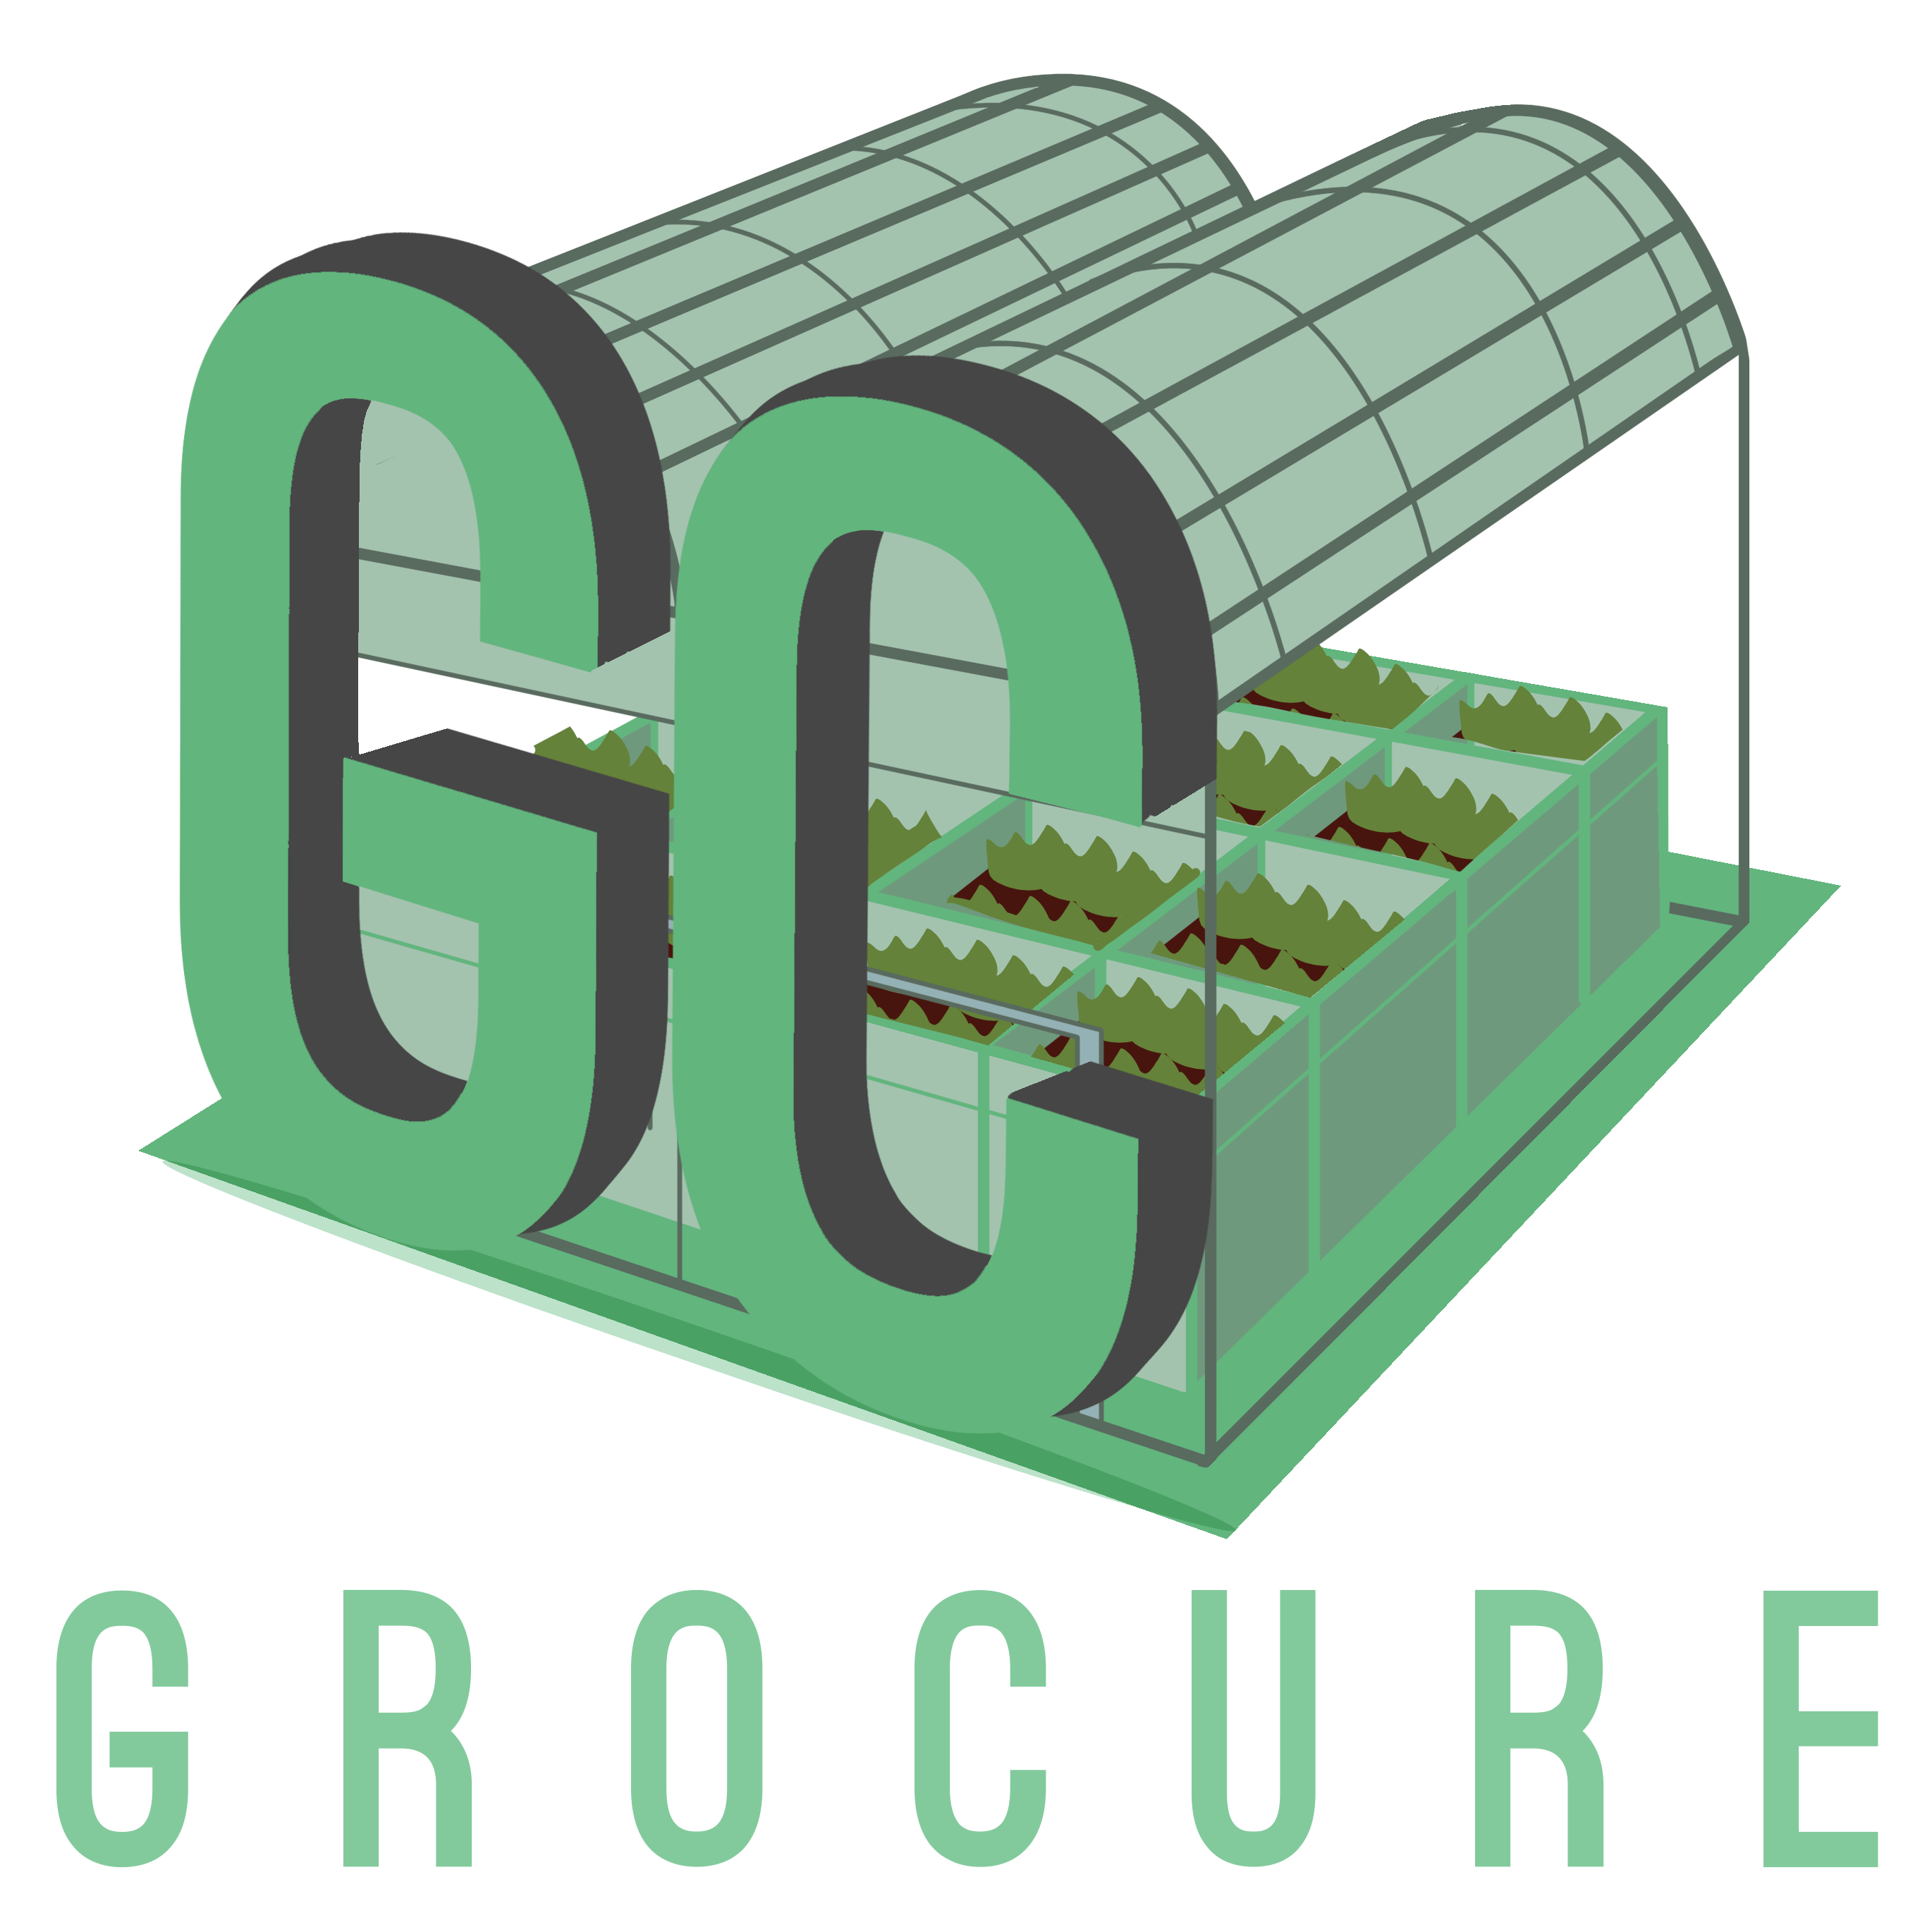 Environment clipart environmental sanitation. Grocure crop solution water